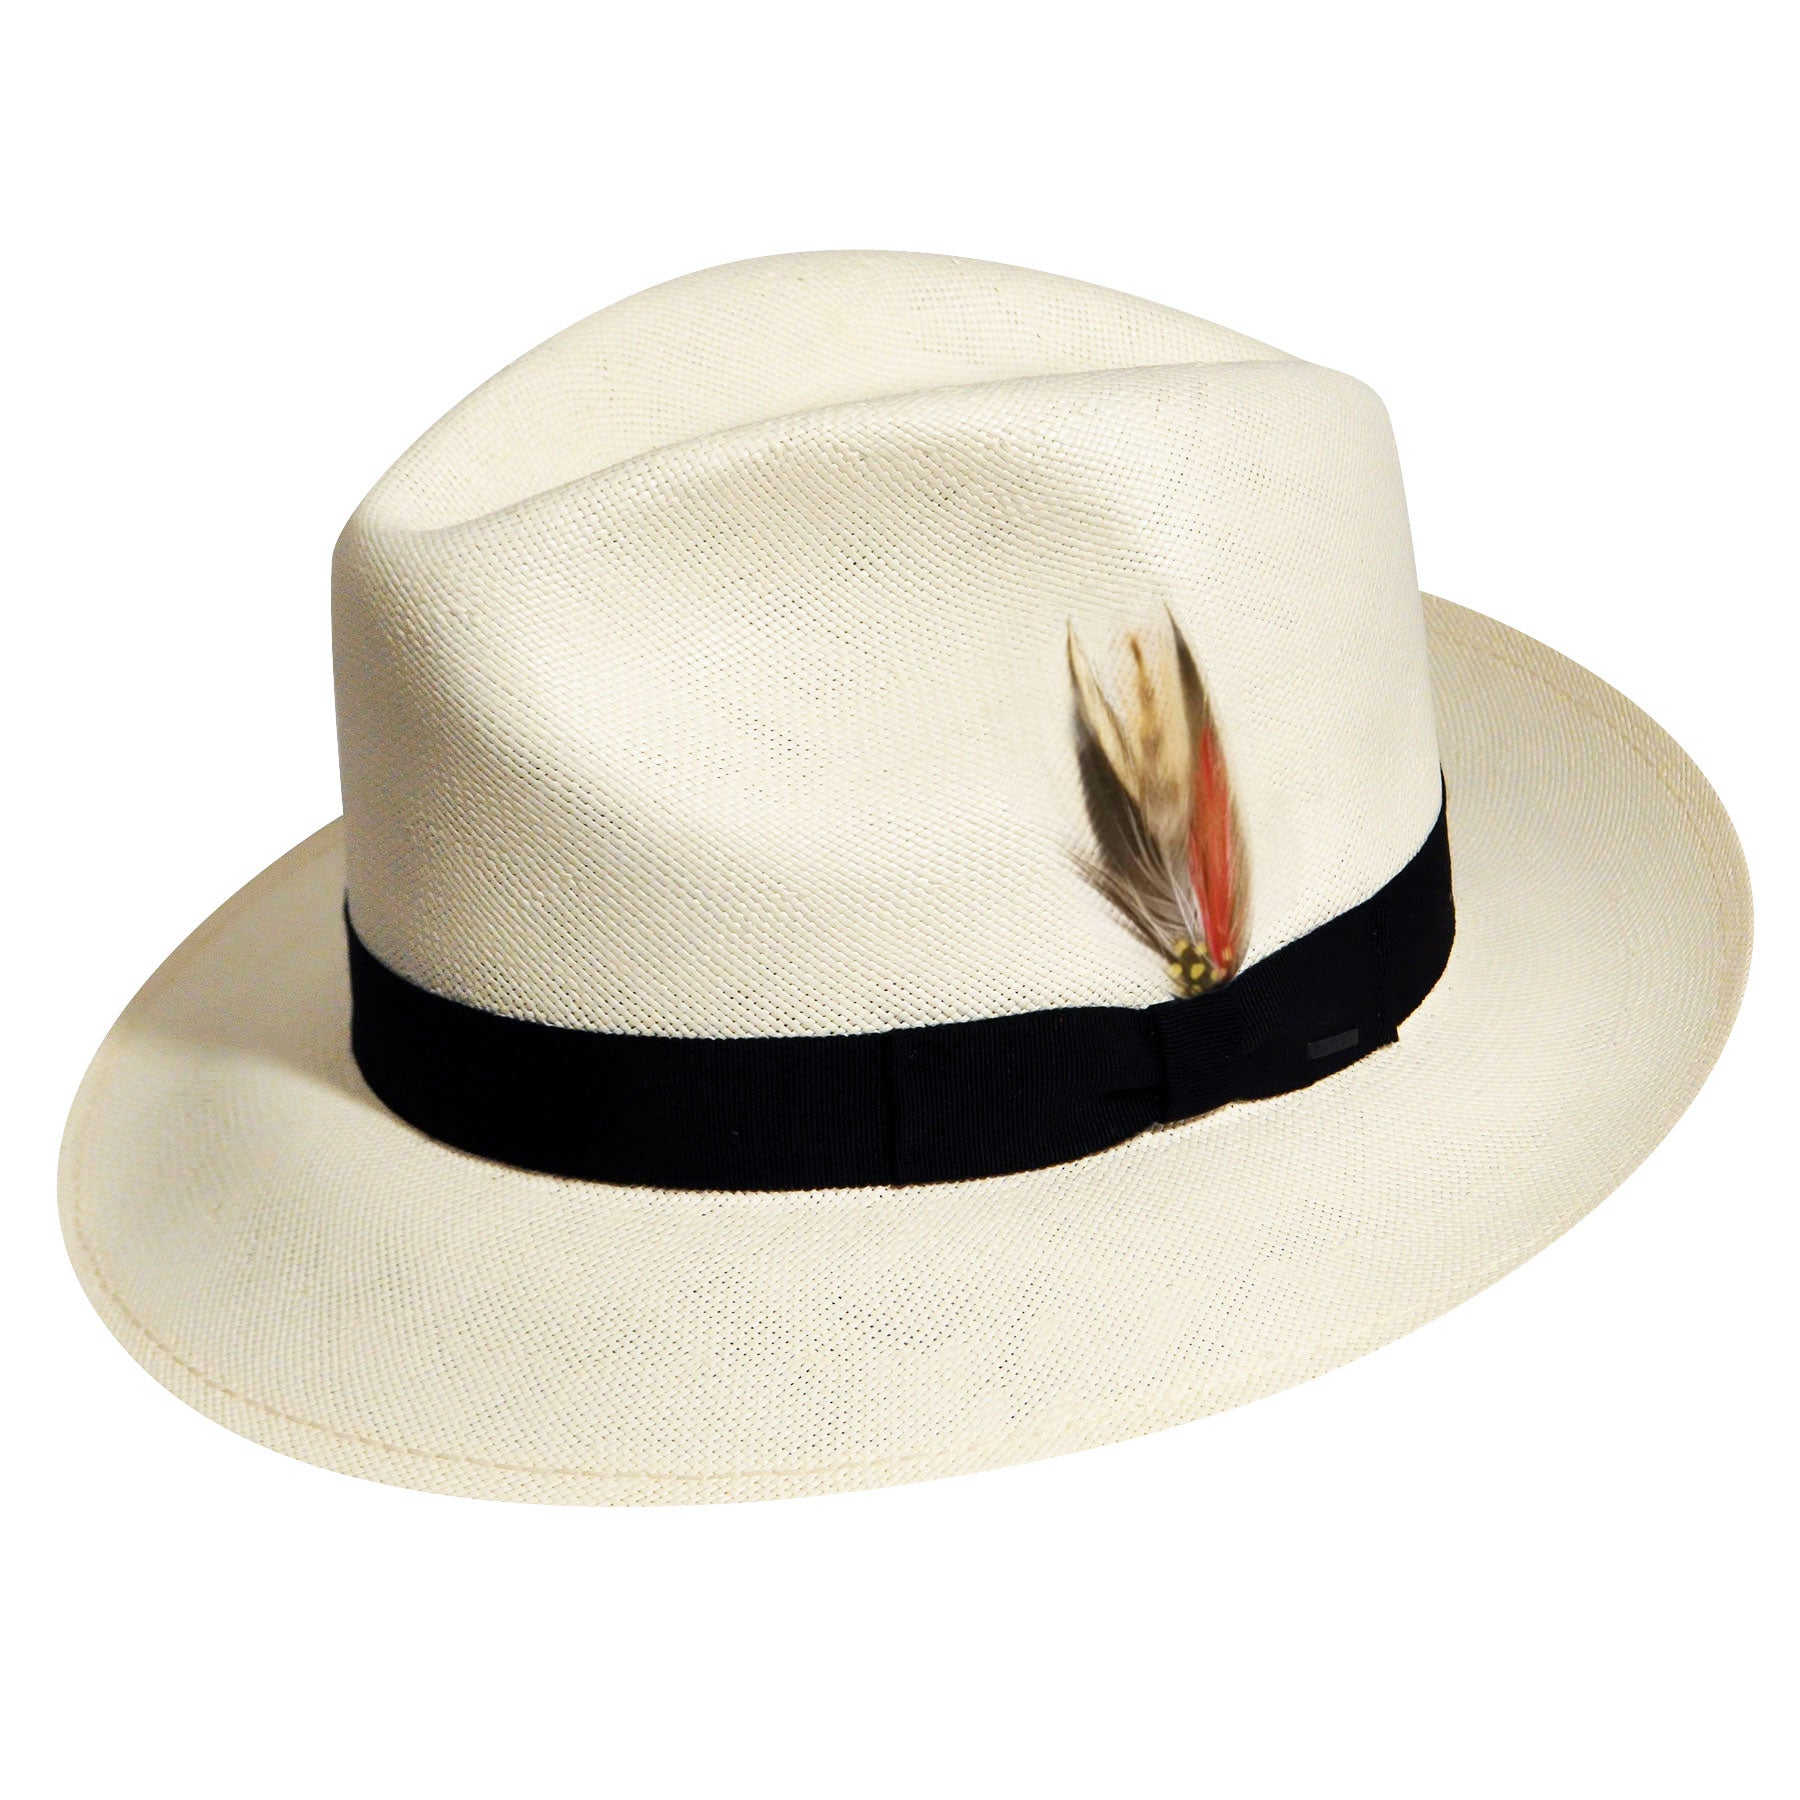 Rockabilly Men's Clothing Crase Litestrawreg Fedora $150.00 AT vintagedancer.com